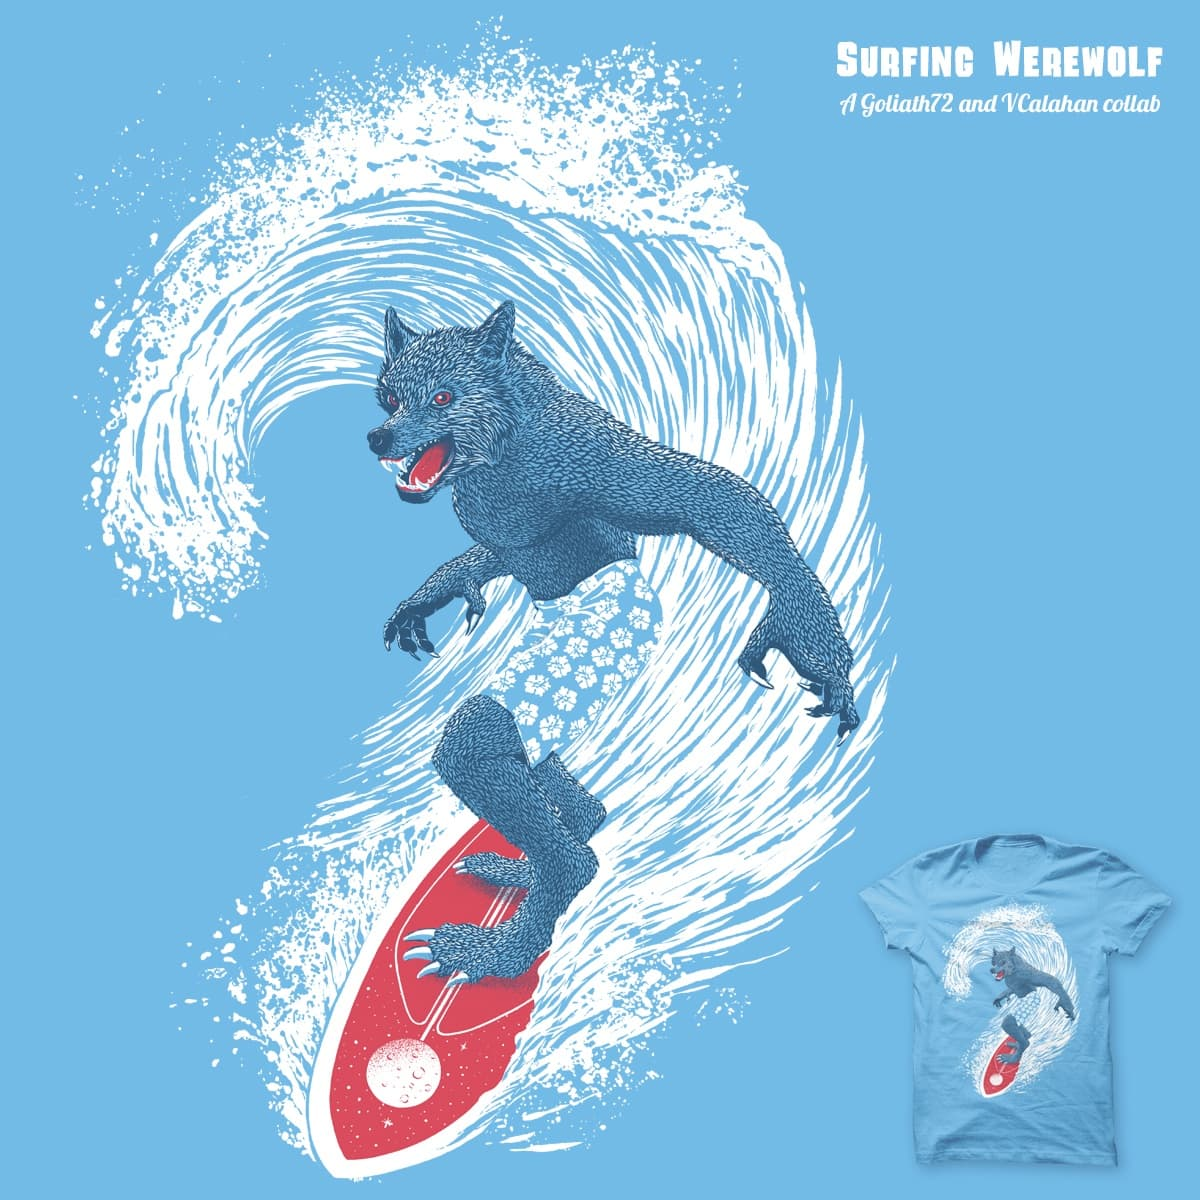 Surfing Werewolf 2.0 by goliath72 and v_calahan on Threadless